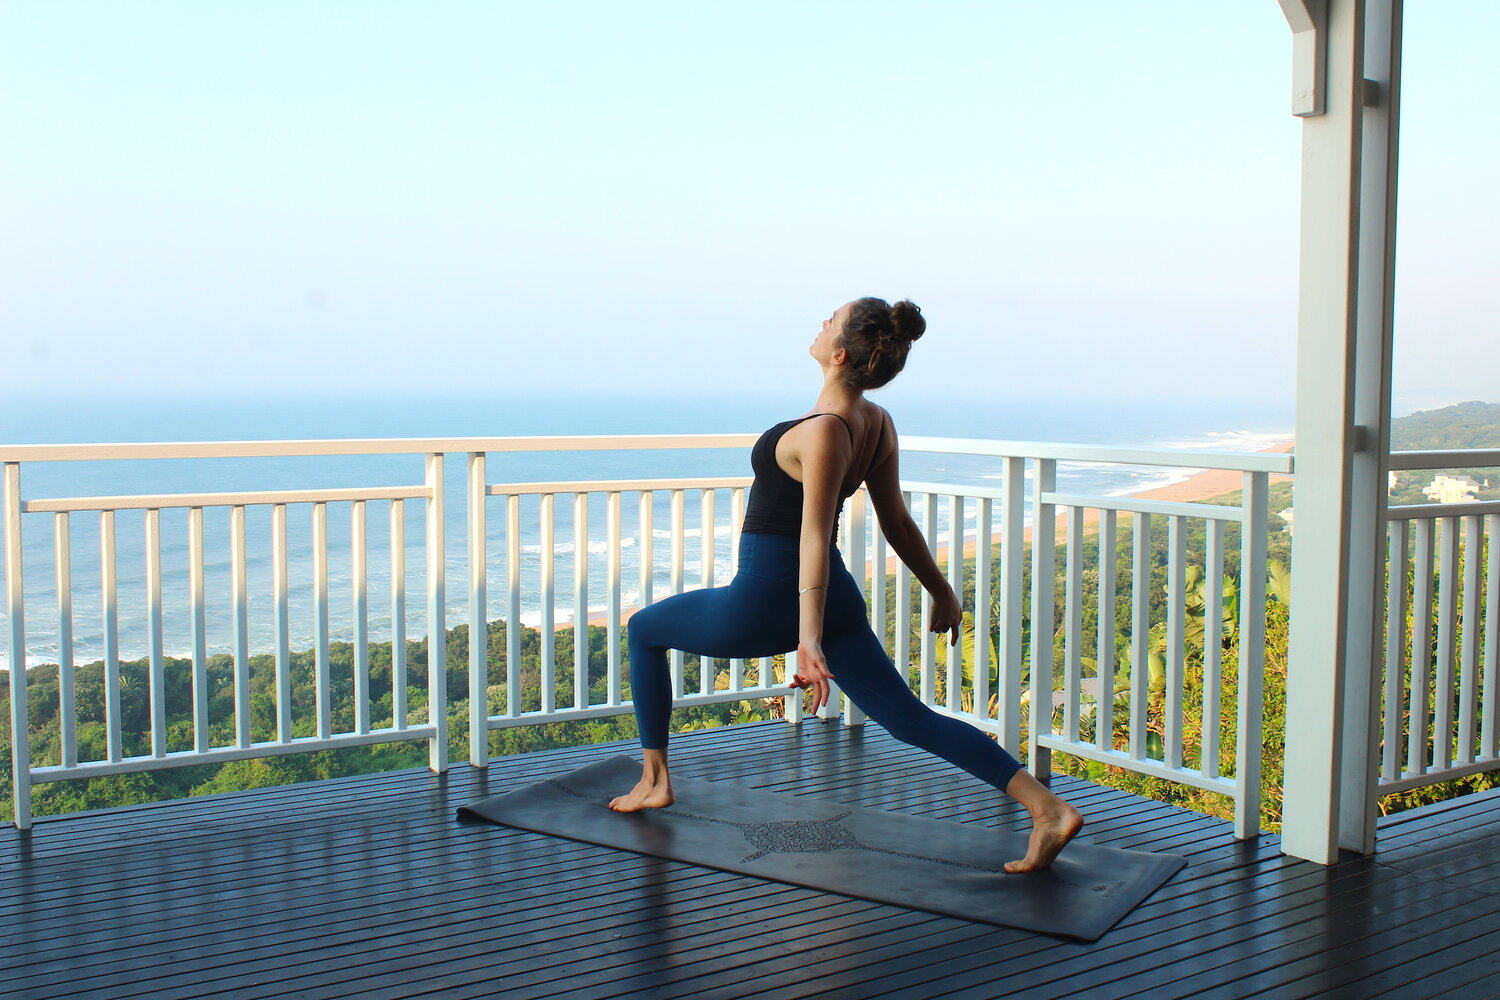 Yoga And Menstruation Yoga On My Period Is Yoga Safe When Menstruating Journal